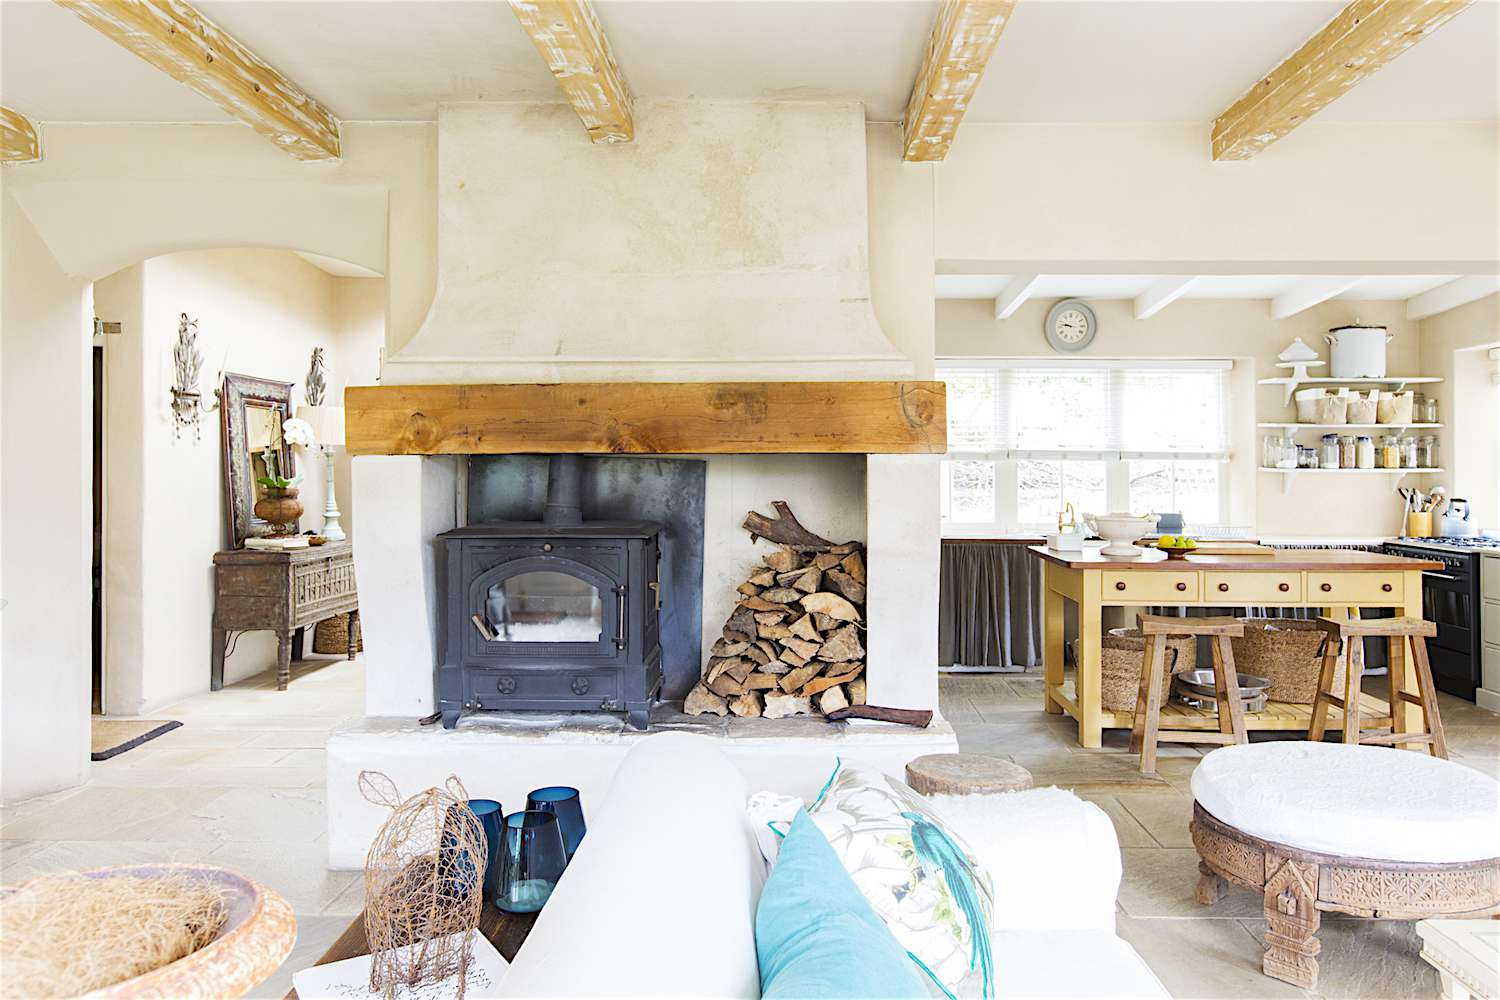 Clean bright common space with fireplace